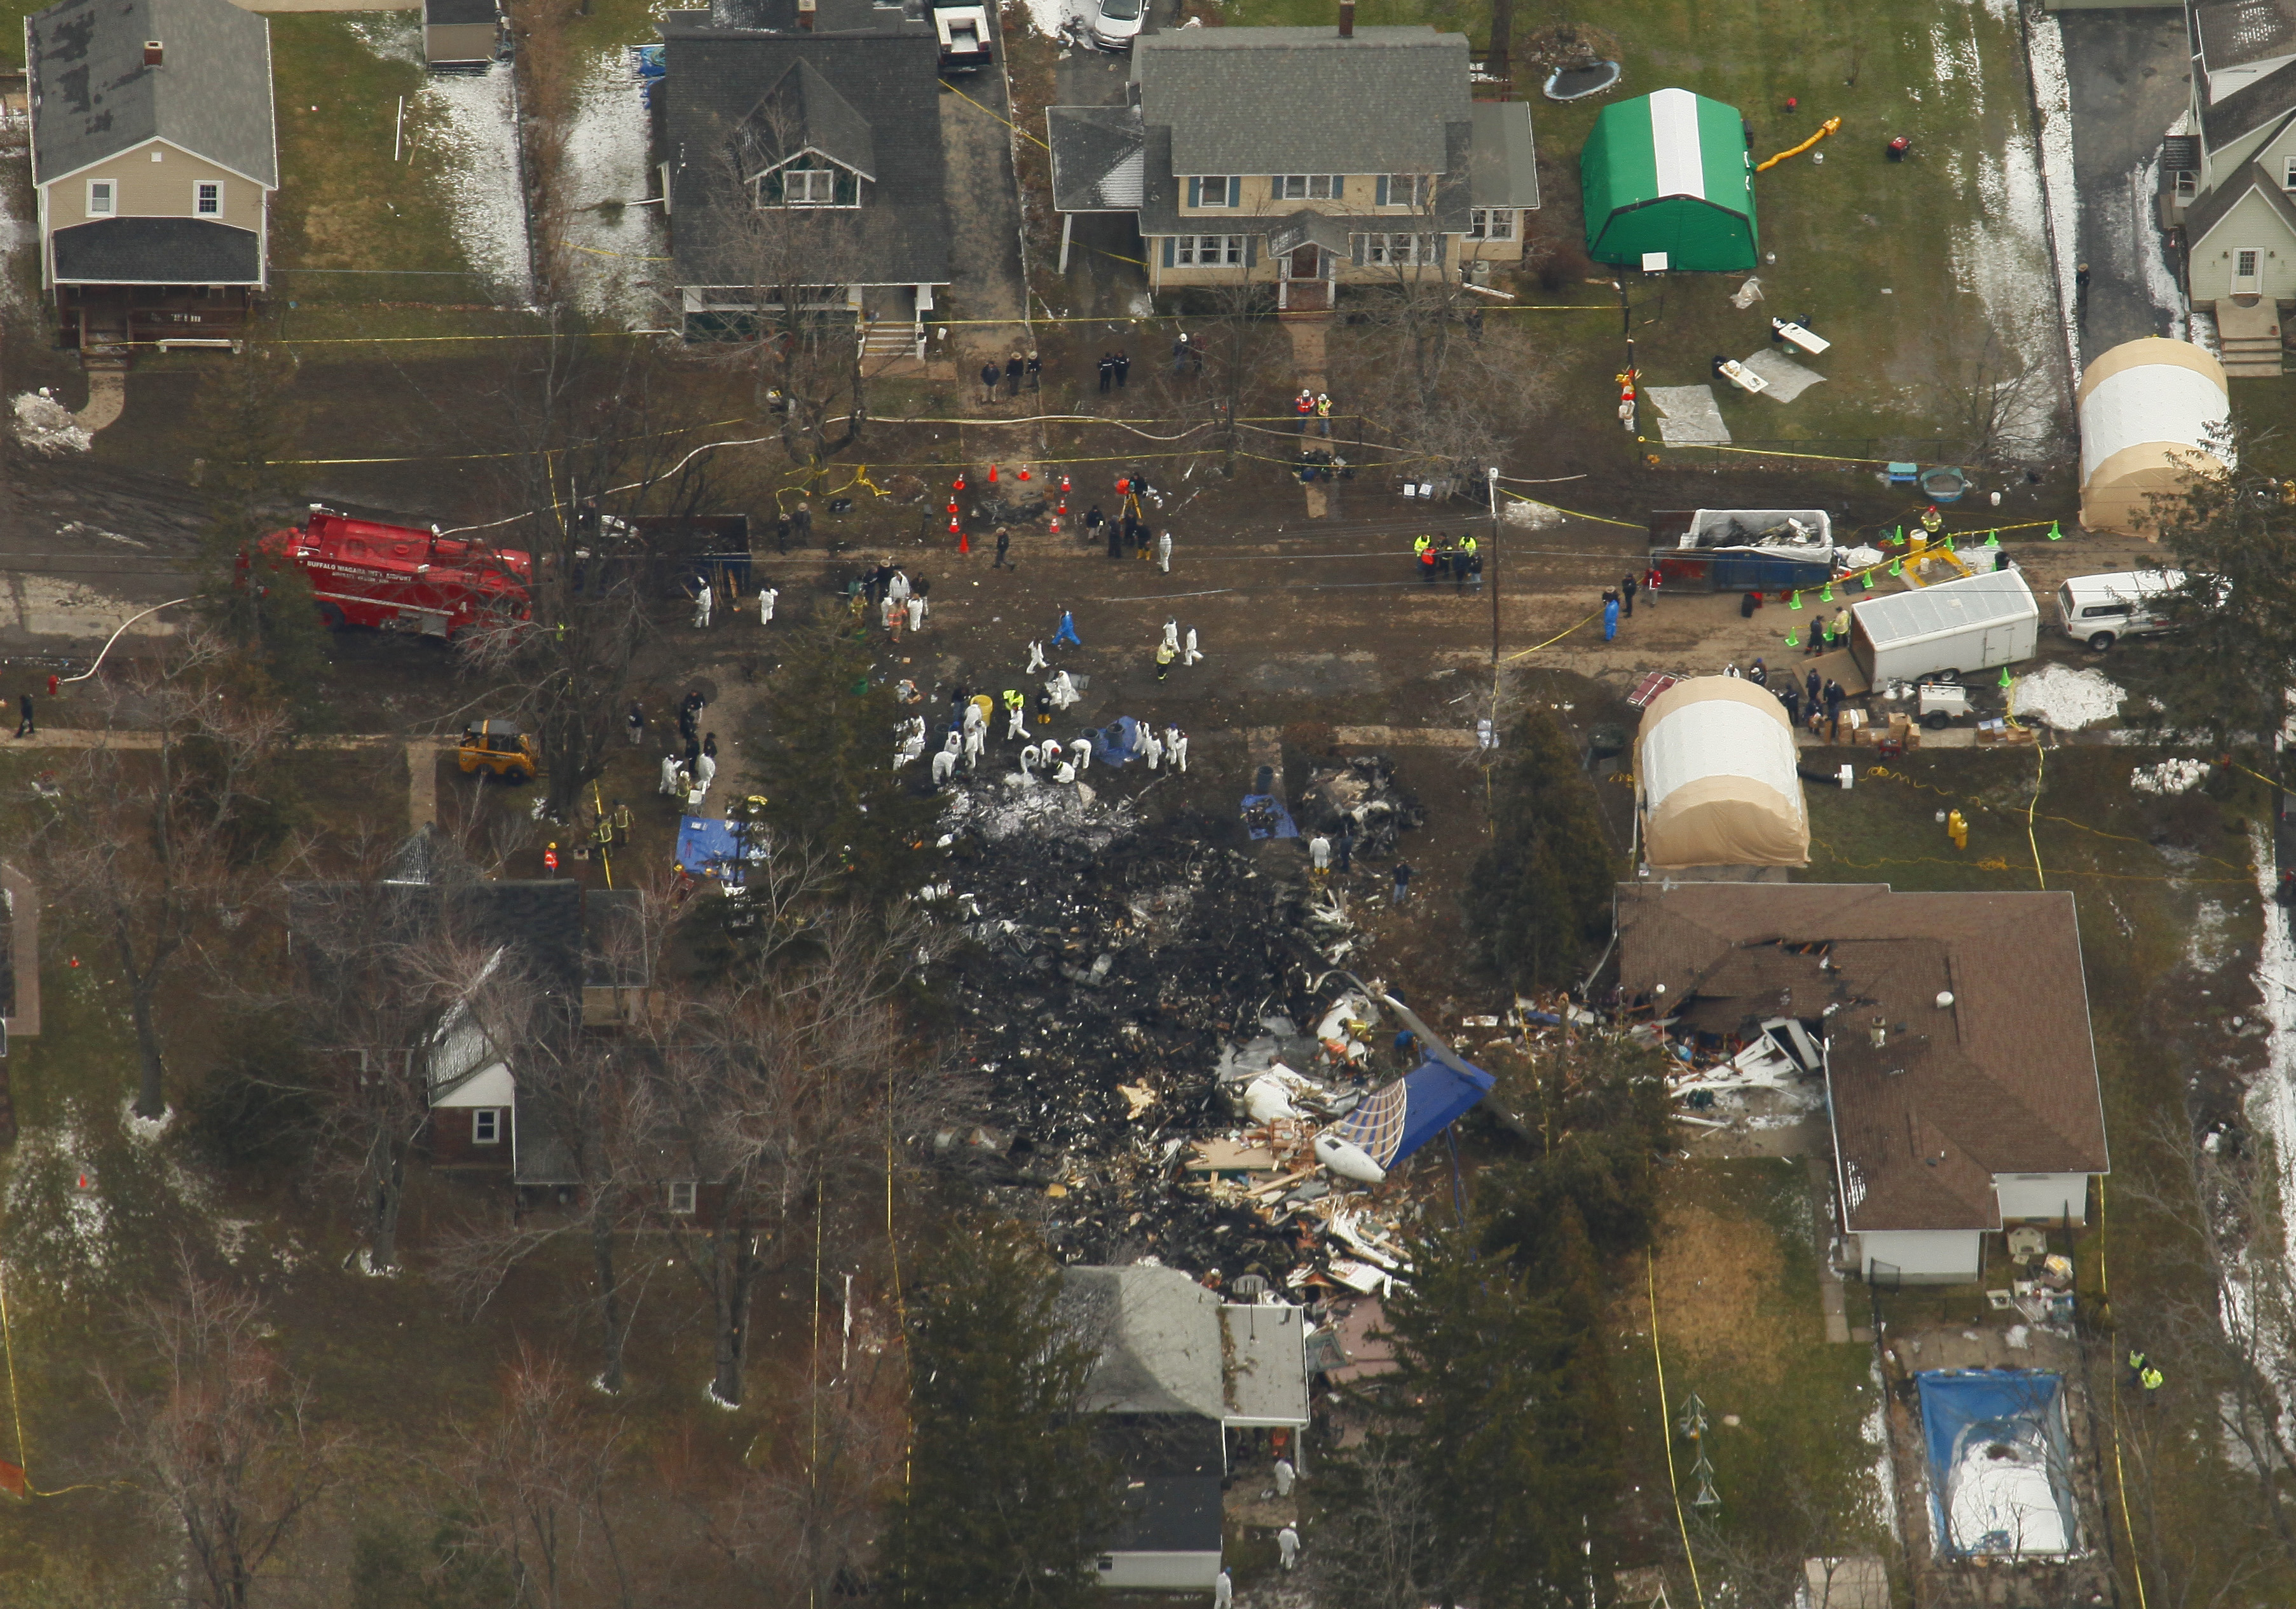 Aerial view of the site where Continental Flight 3407 crashed into a home on Long Street in Clarence. Photo taken Feb. 13, 2009, by Derek Gee/Buffalo News